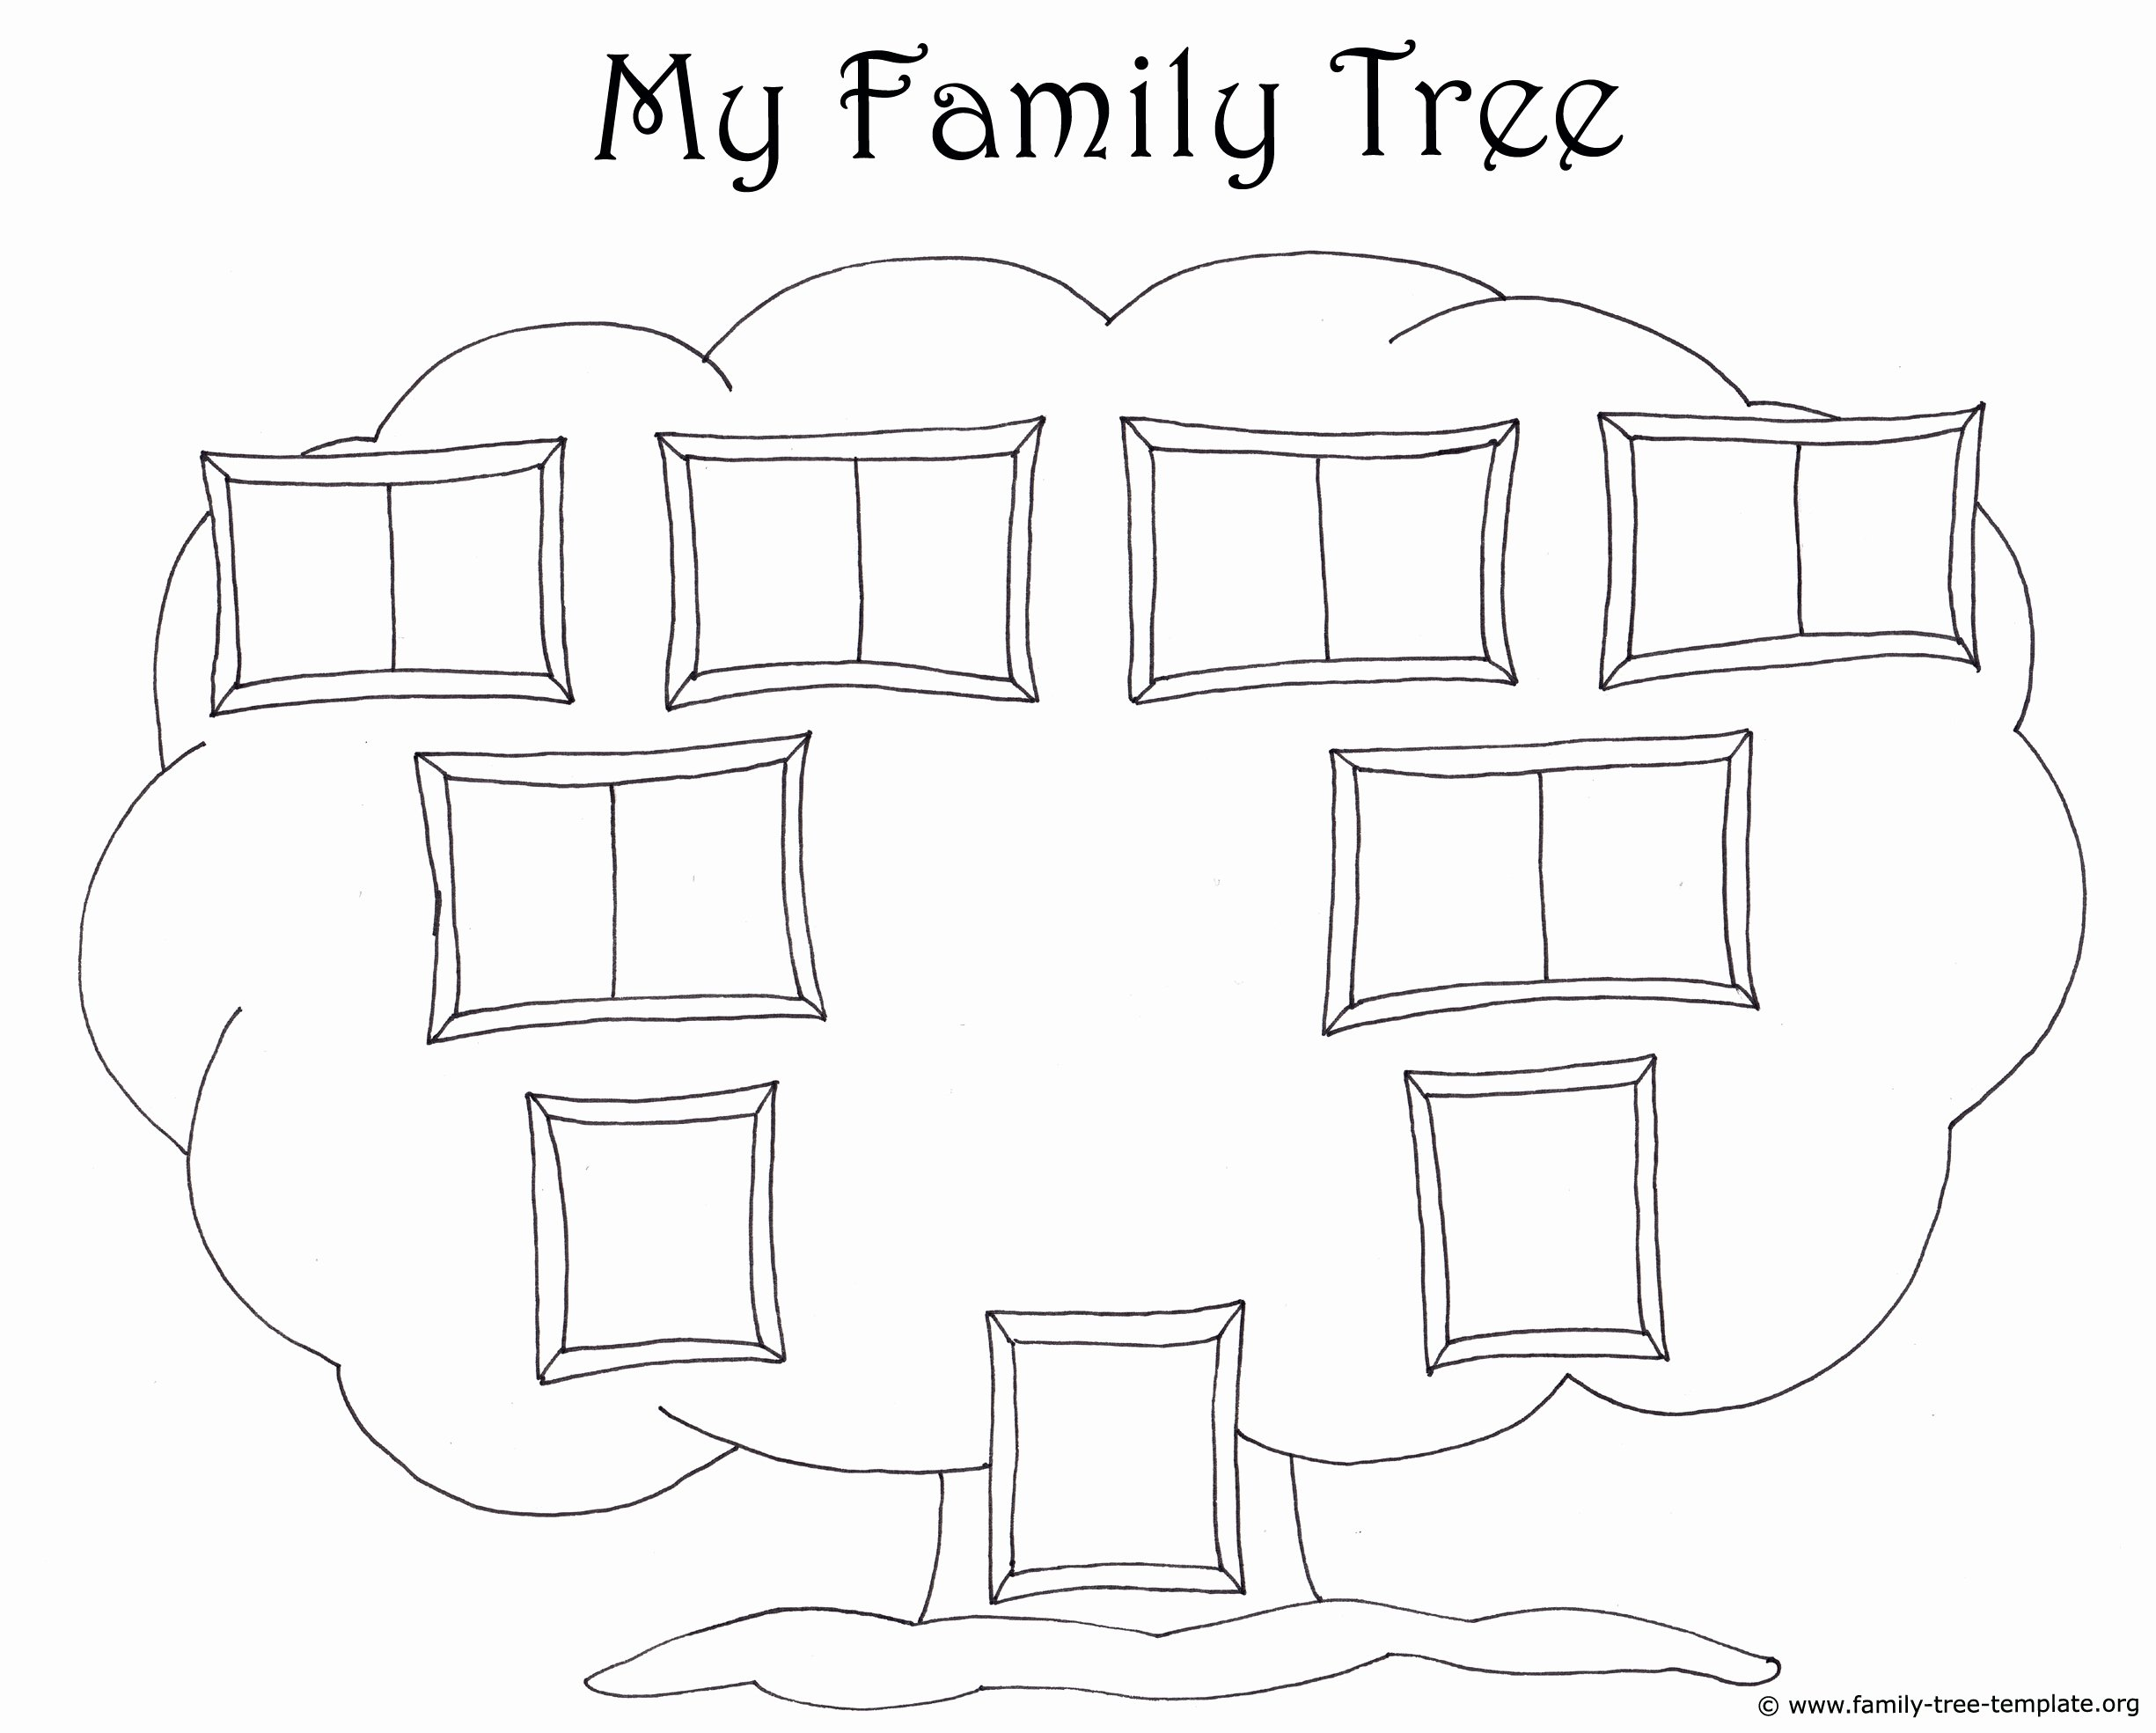 Printable Family Tree Charts New Family Tree Template for Kids Printable Genealogy Charts